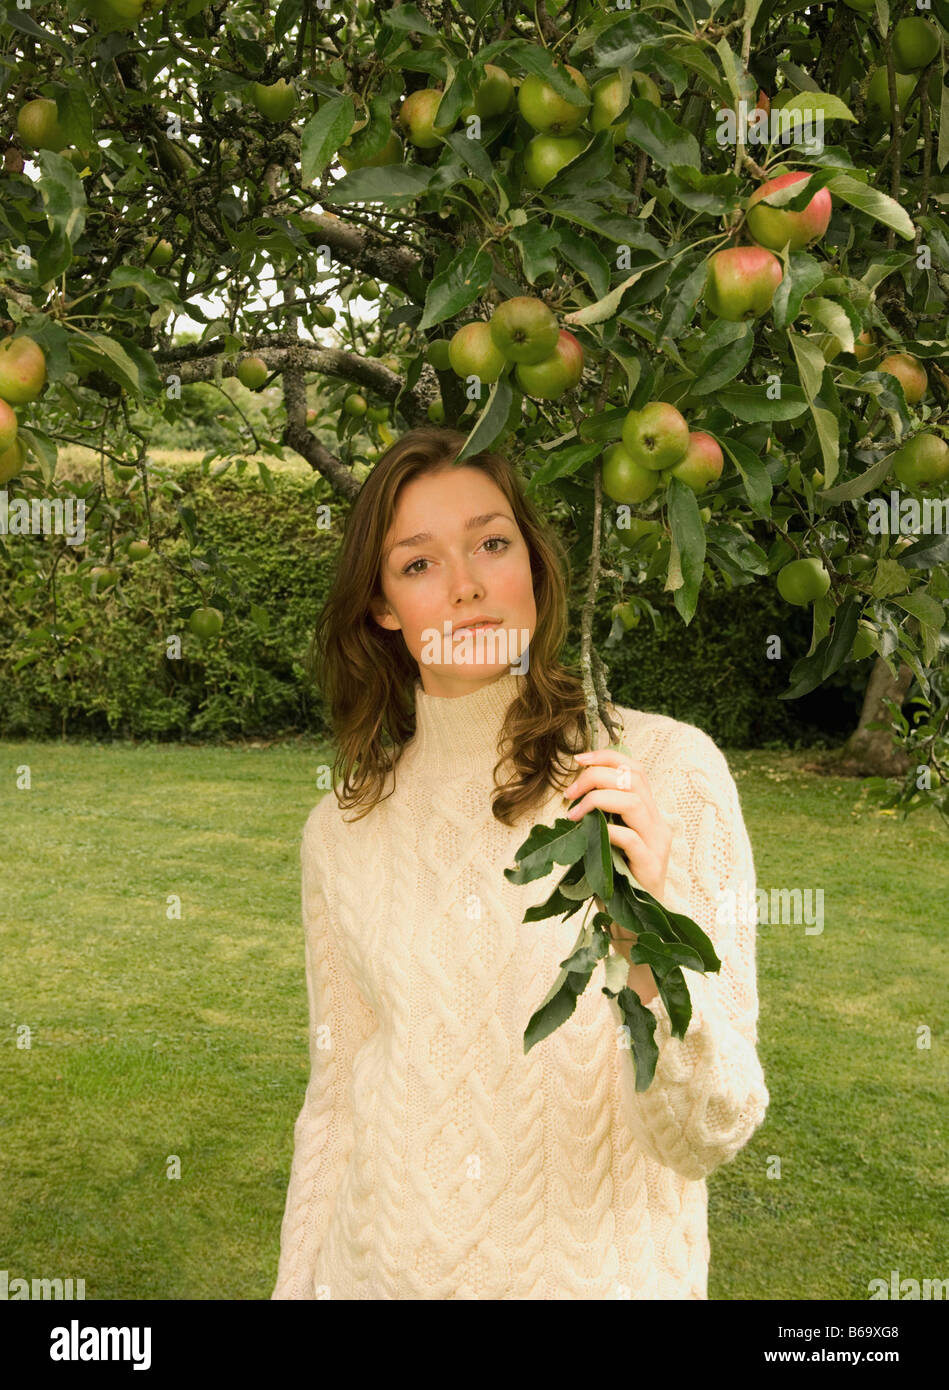 A young female under an apple tree - Stock Image